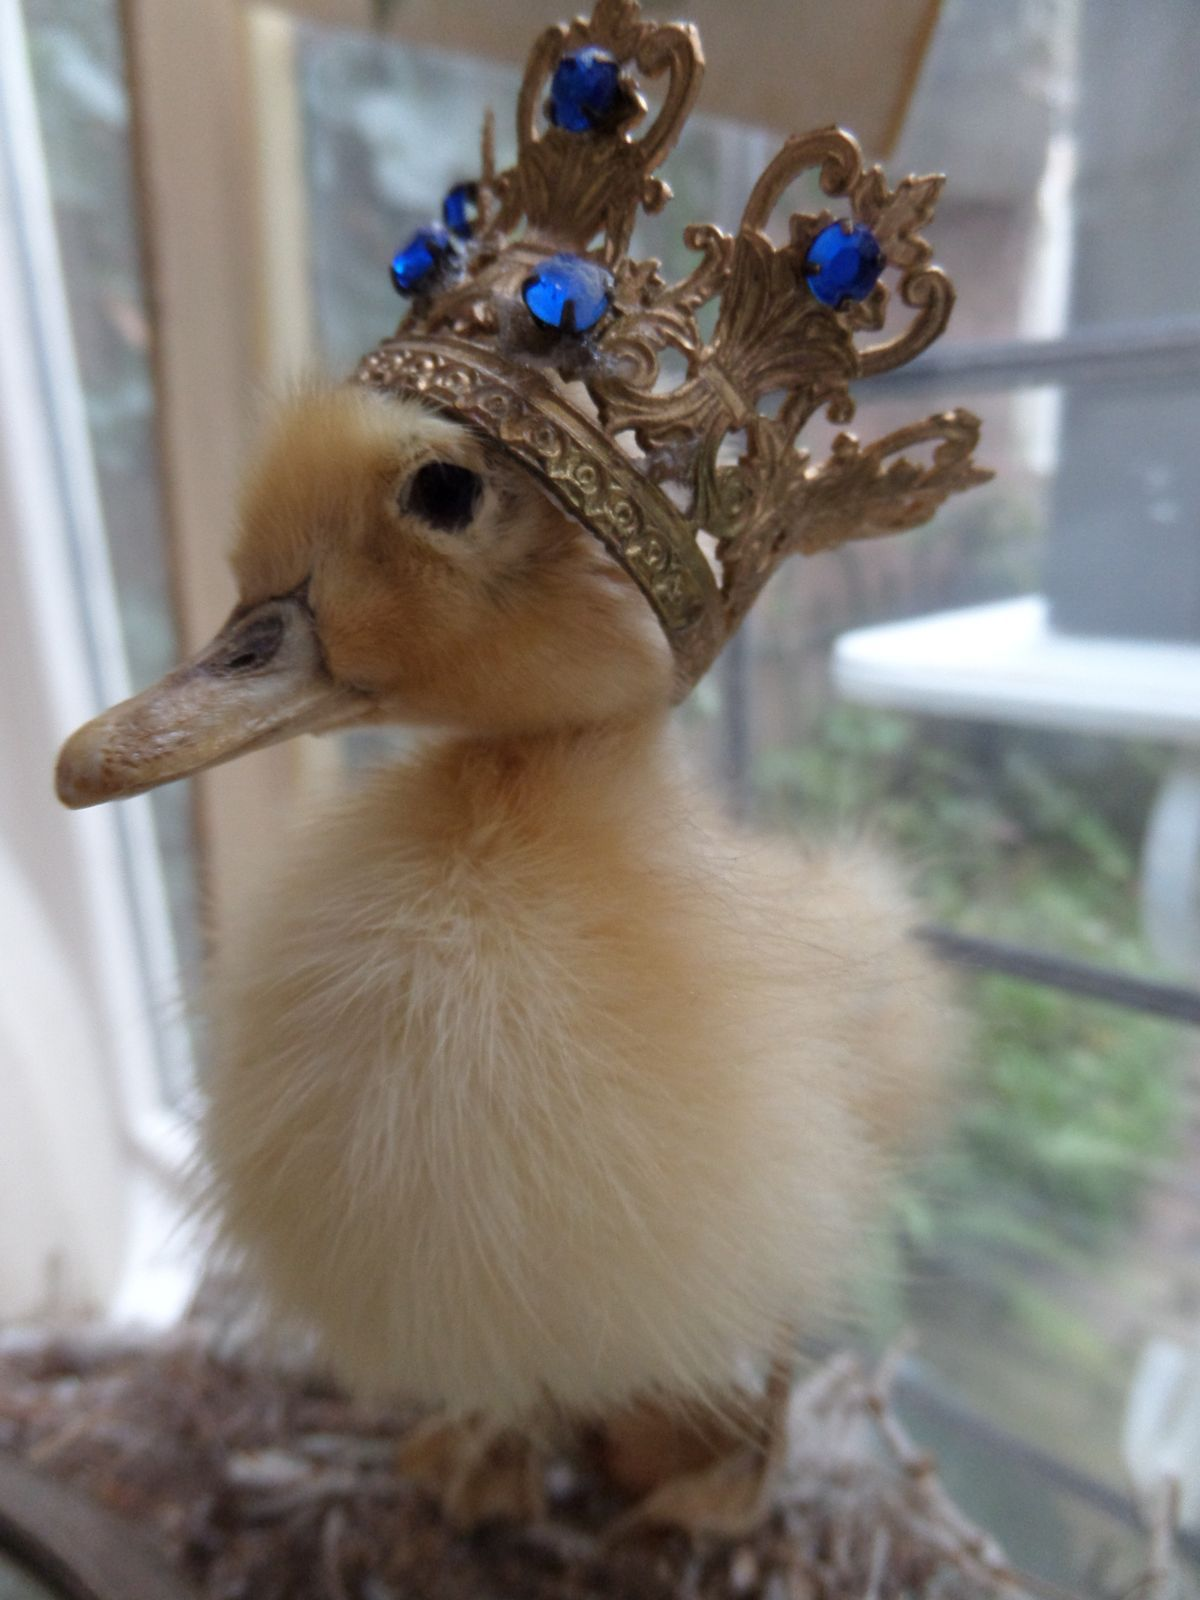 Cute little duck - photo#32